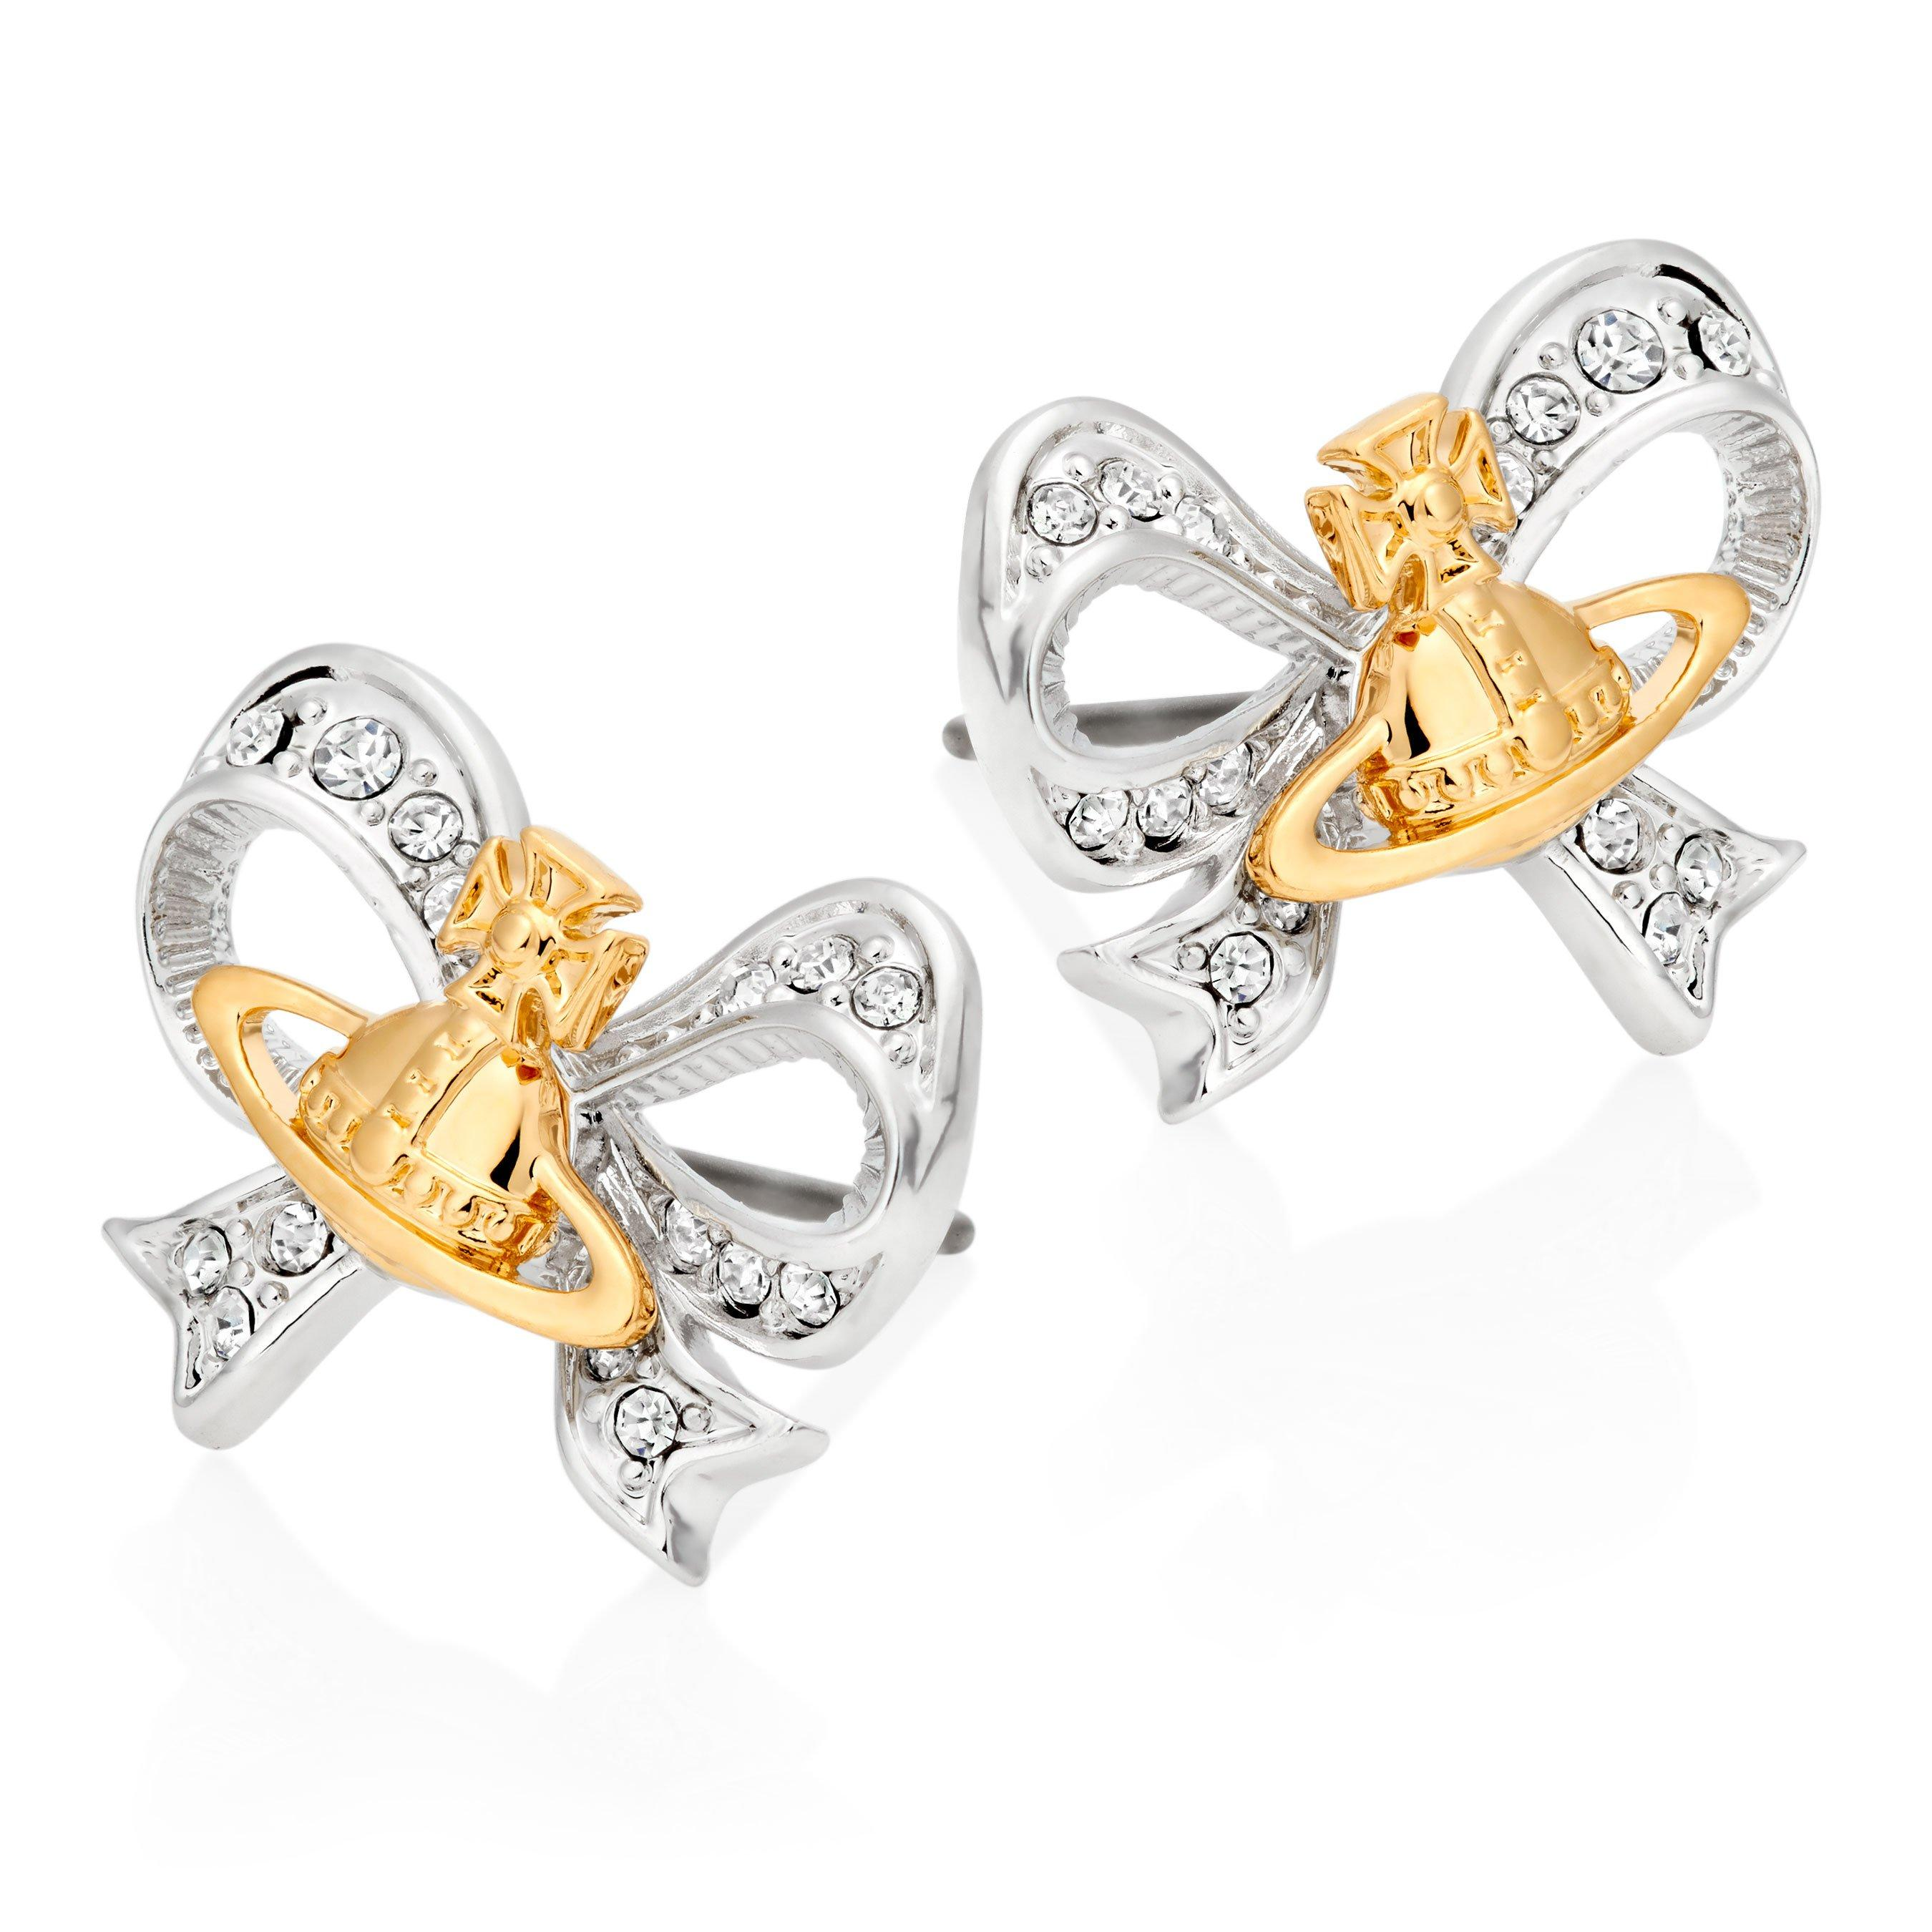 Vivienne Westwood Gail Silver and Gold Tone Earrings